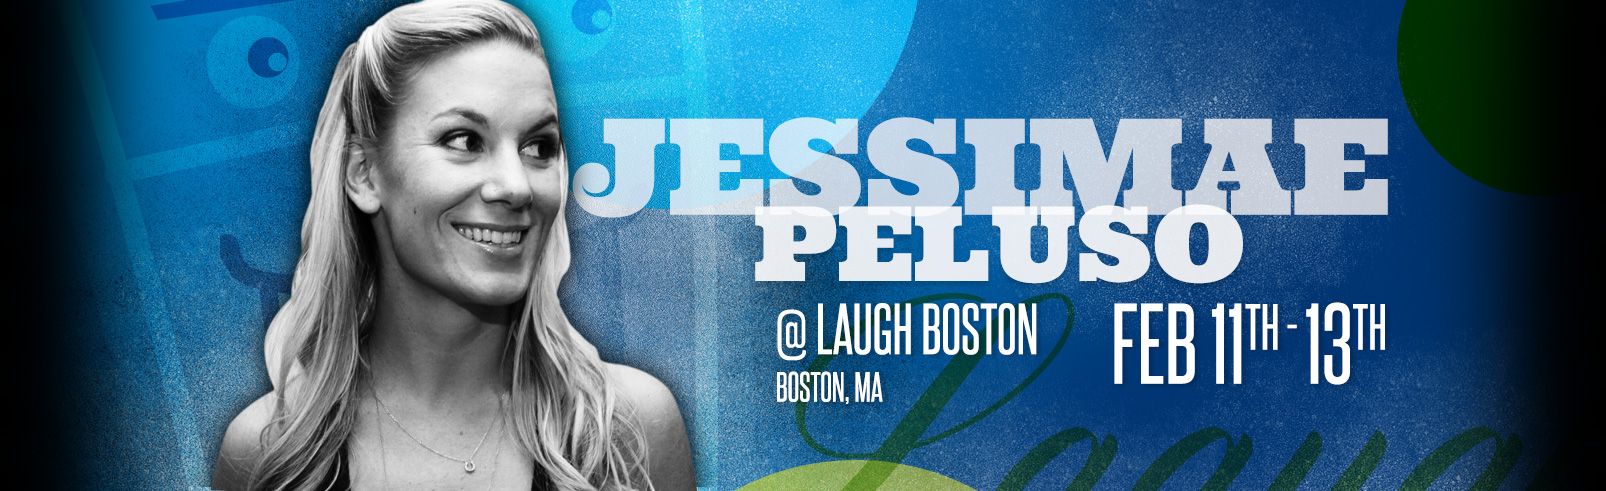 Jessimae Peluso @ Laugh Boston